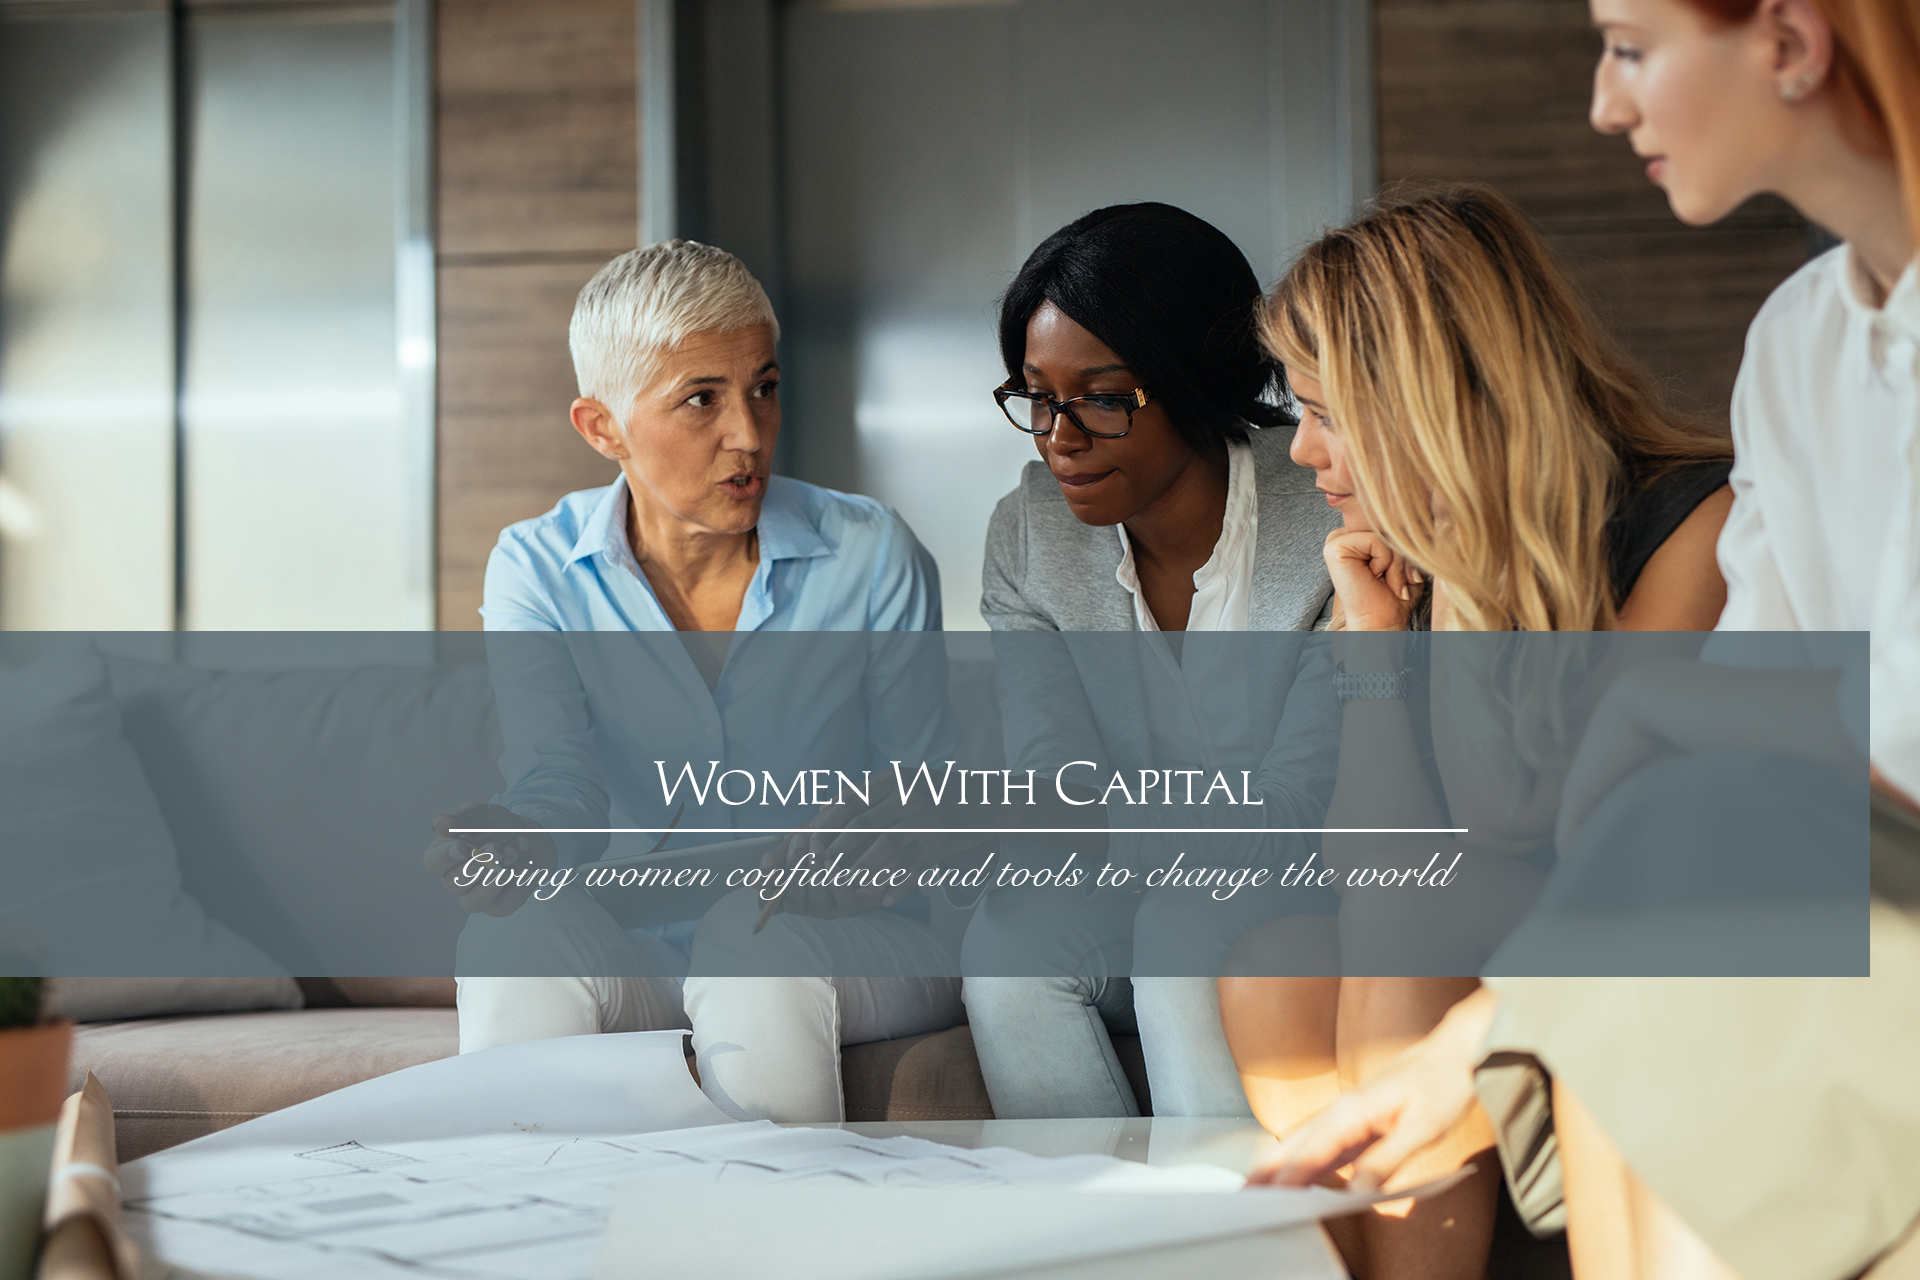 Women_With_Capital_banner_wtitle_2.jpg